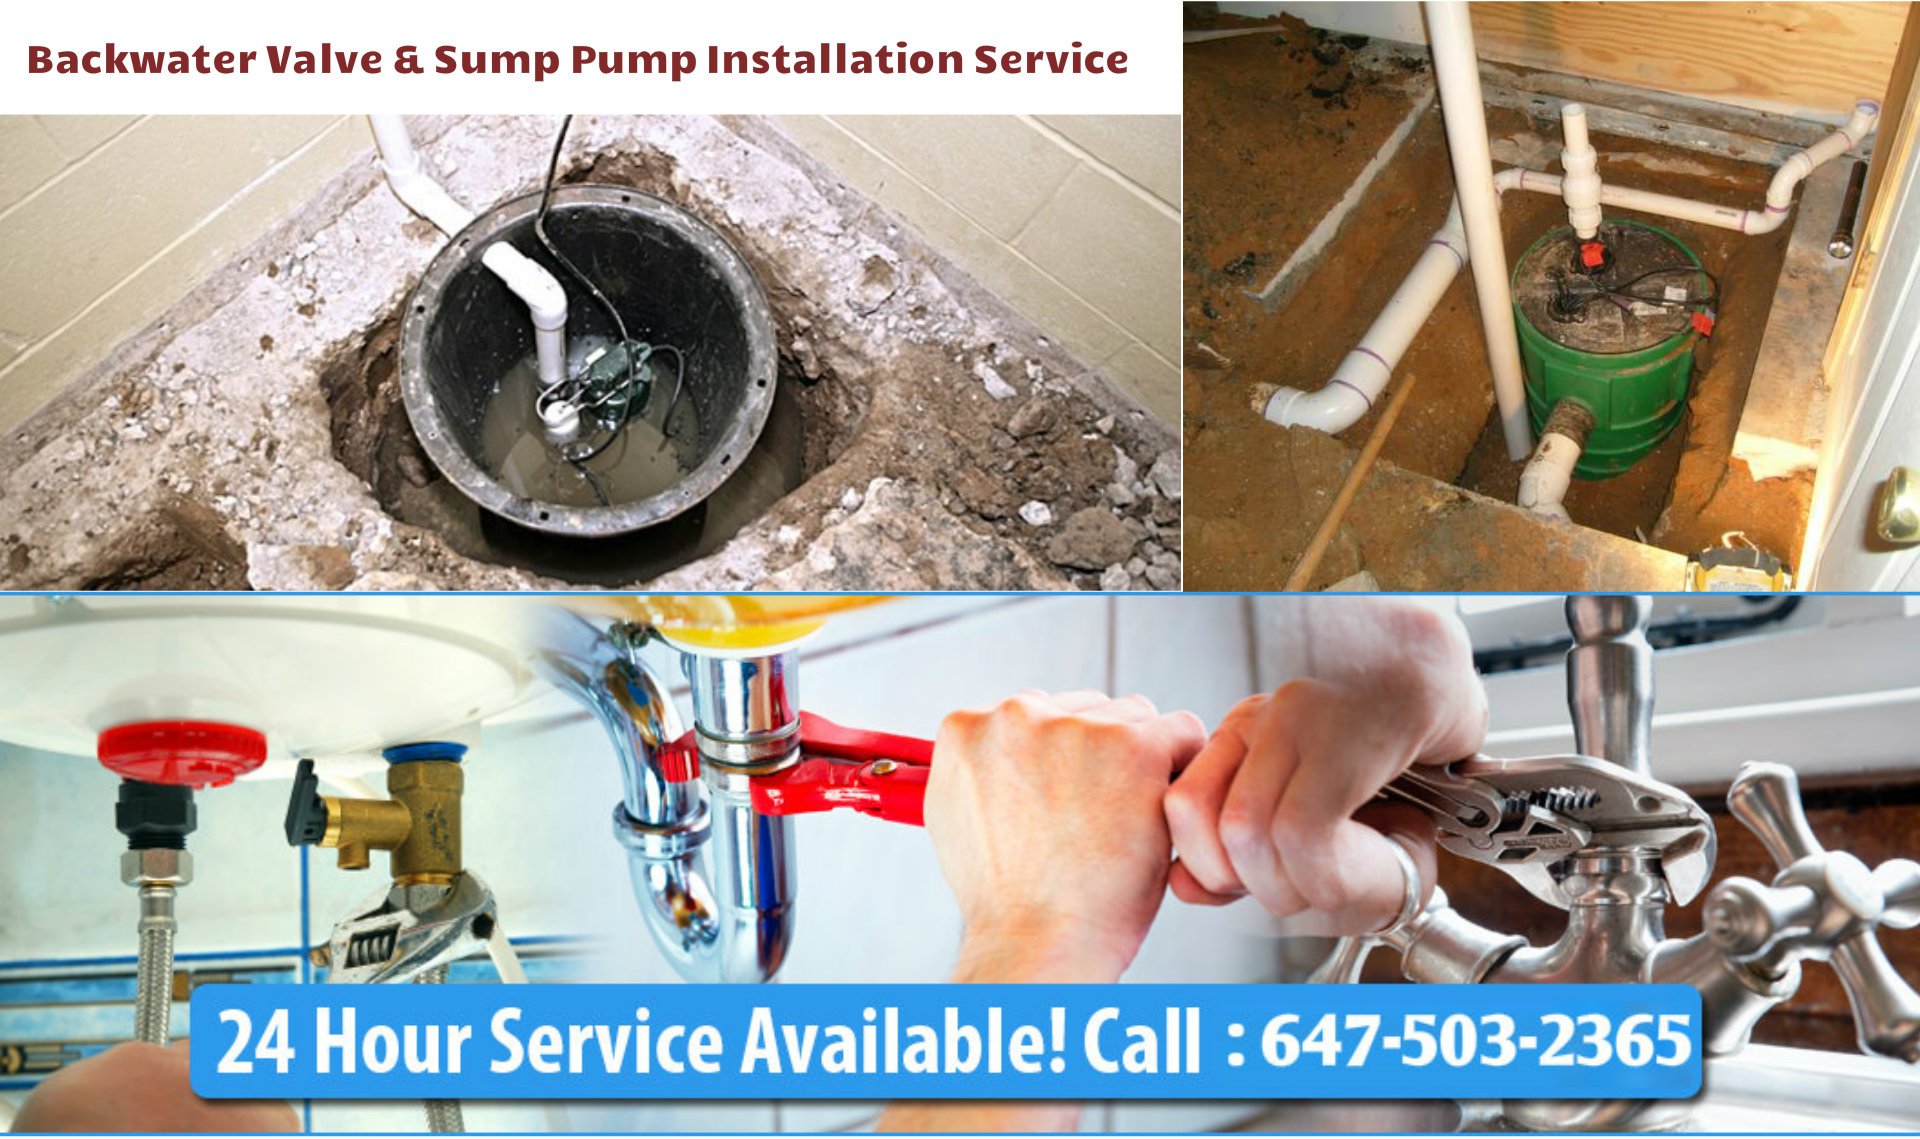 Presco Plumbing & Drain first image